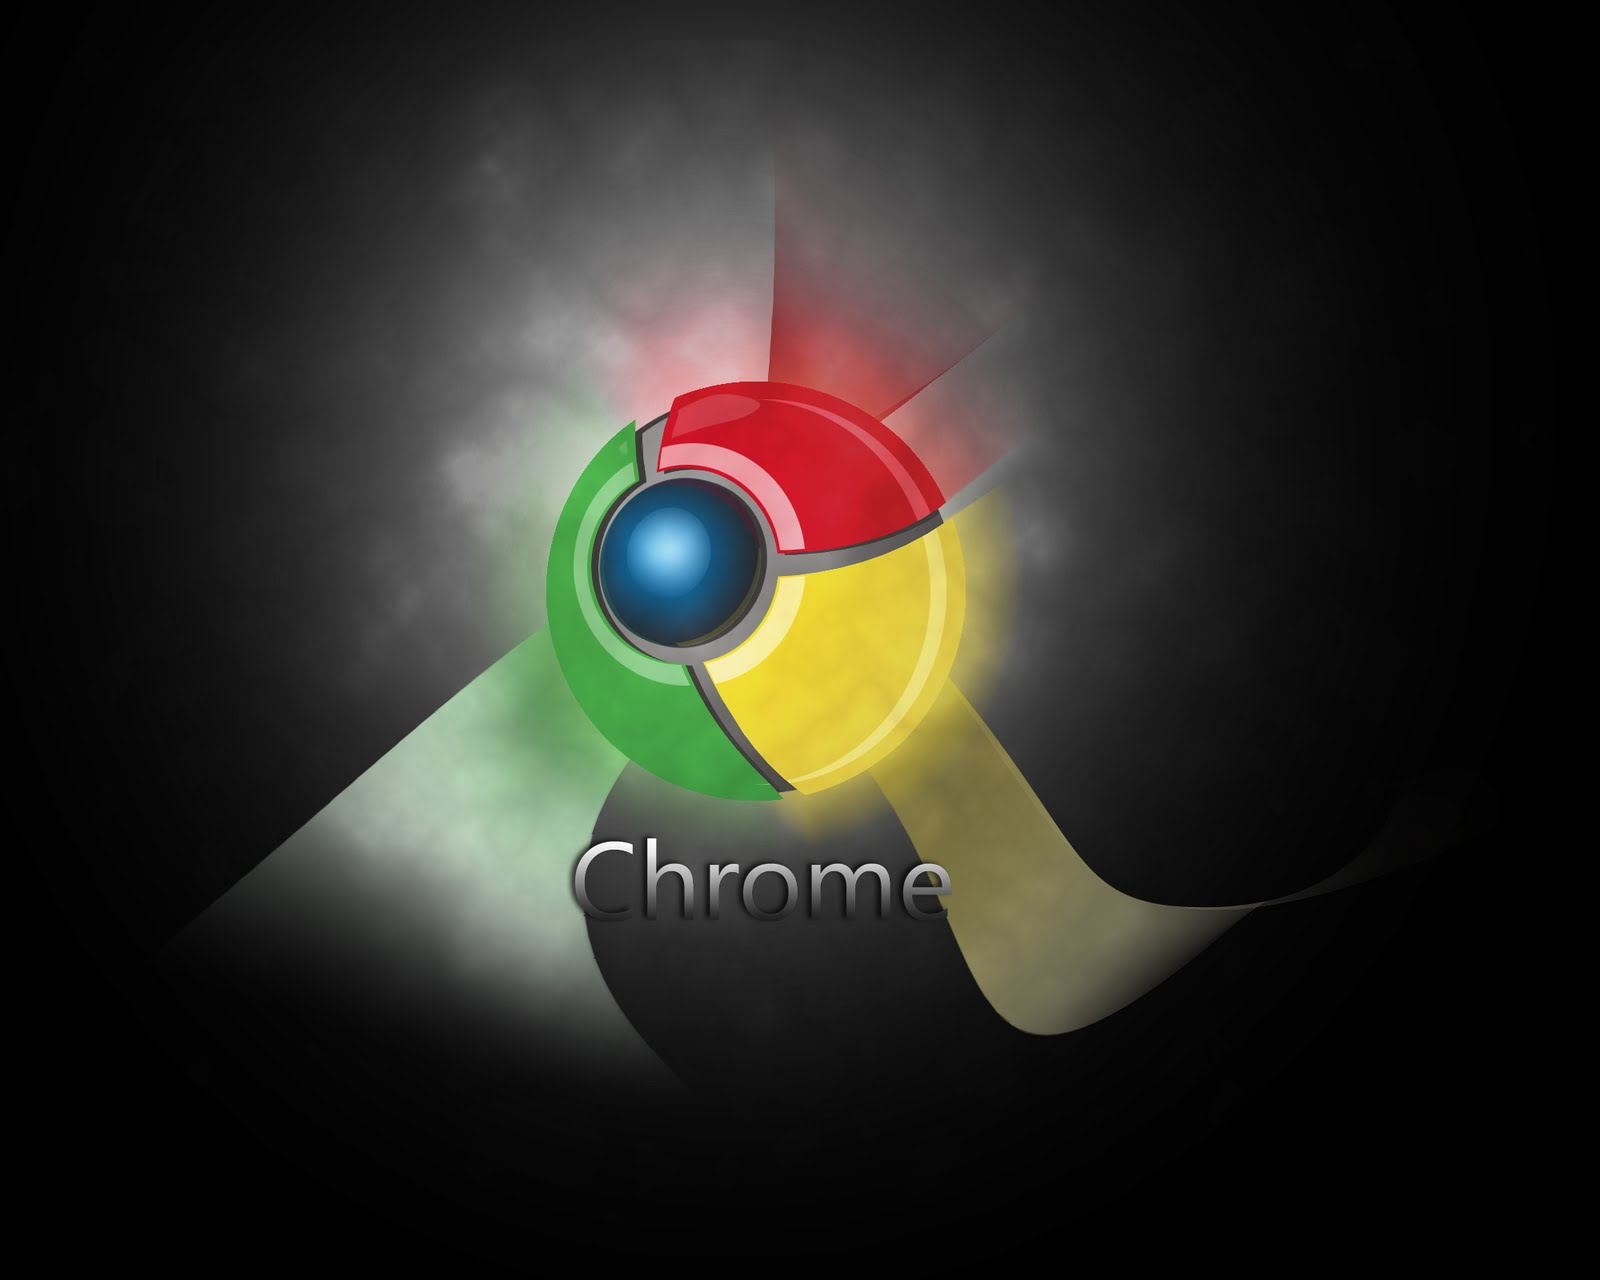 <span><b class=sec>Google Chrome</b> Download 64 Bit Windows 7 - Latest Web Browser</span>